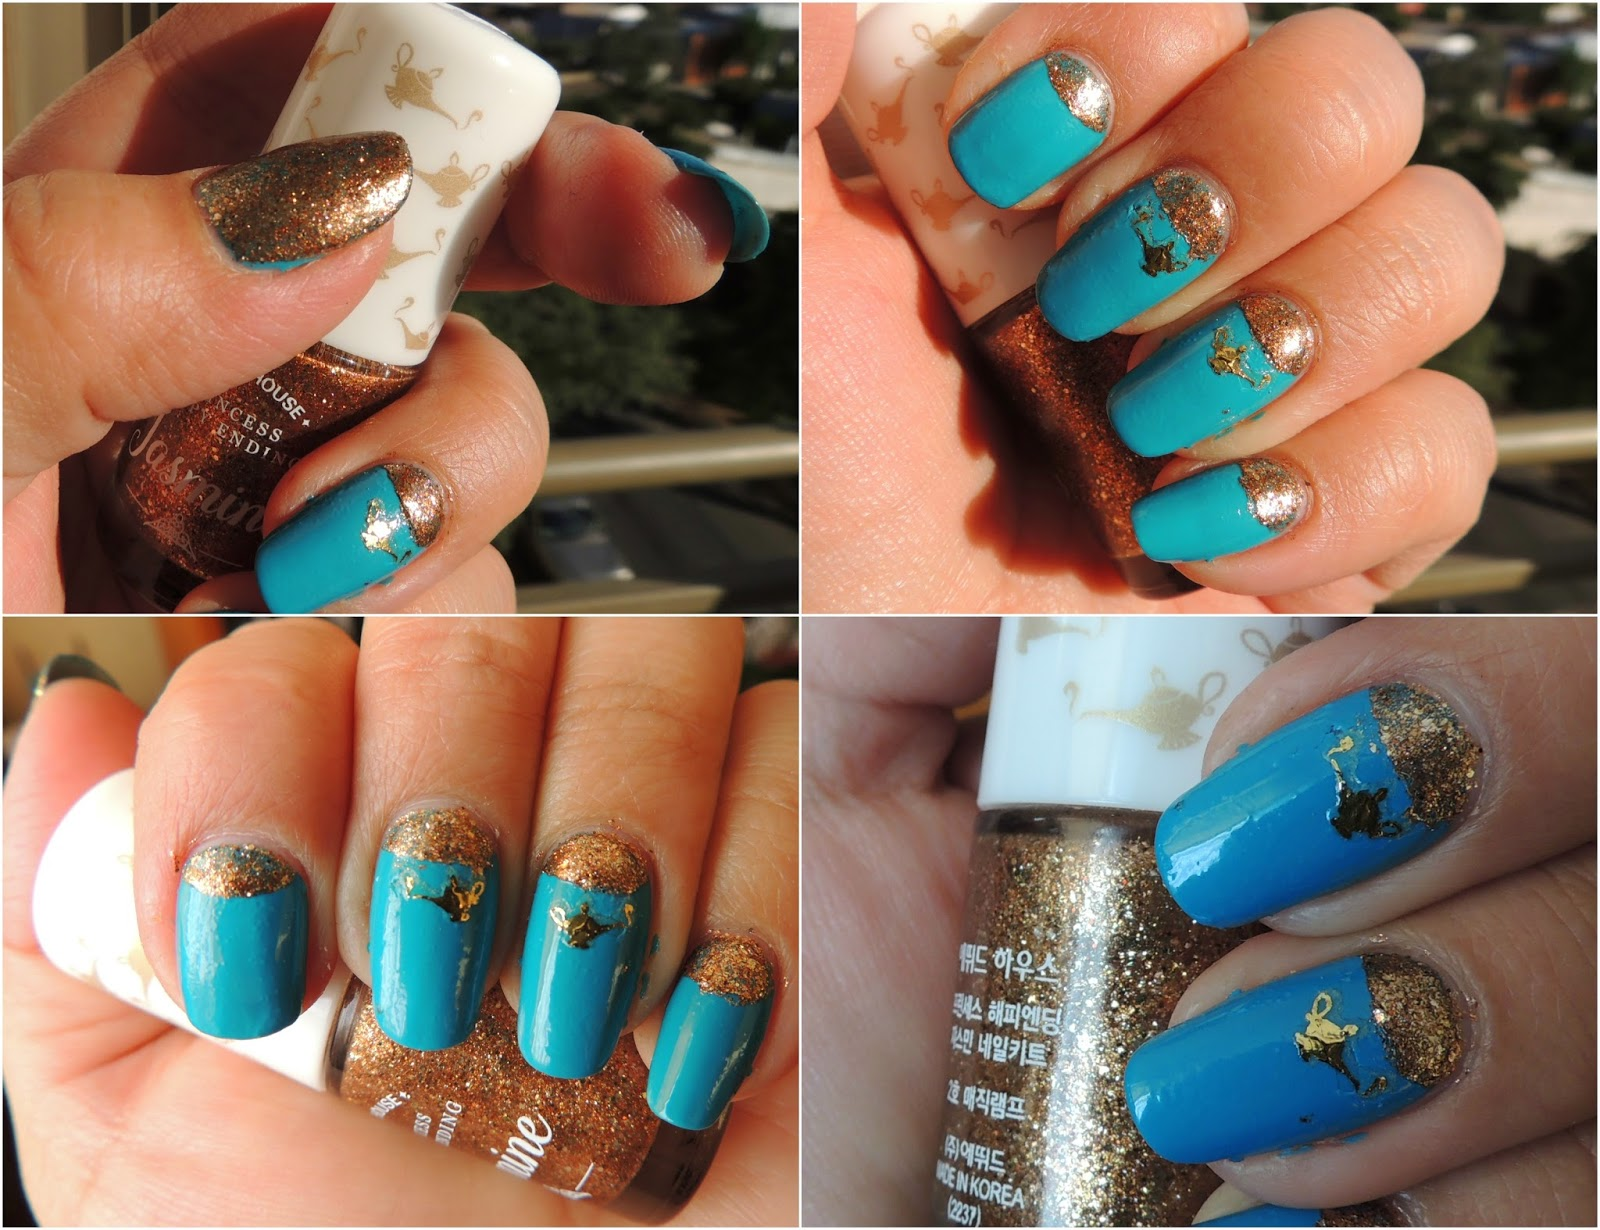 Jasmine Nails And Day Spa